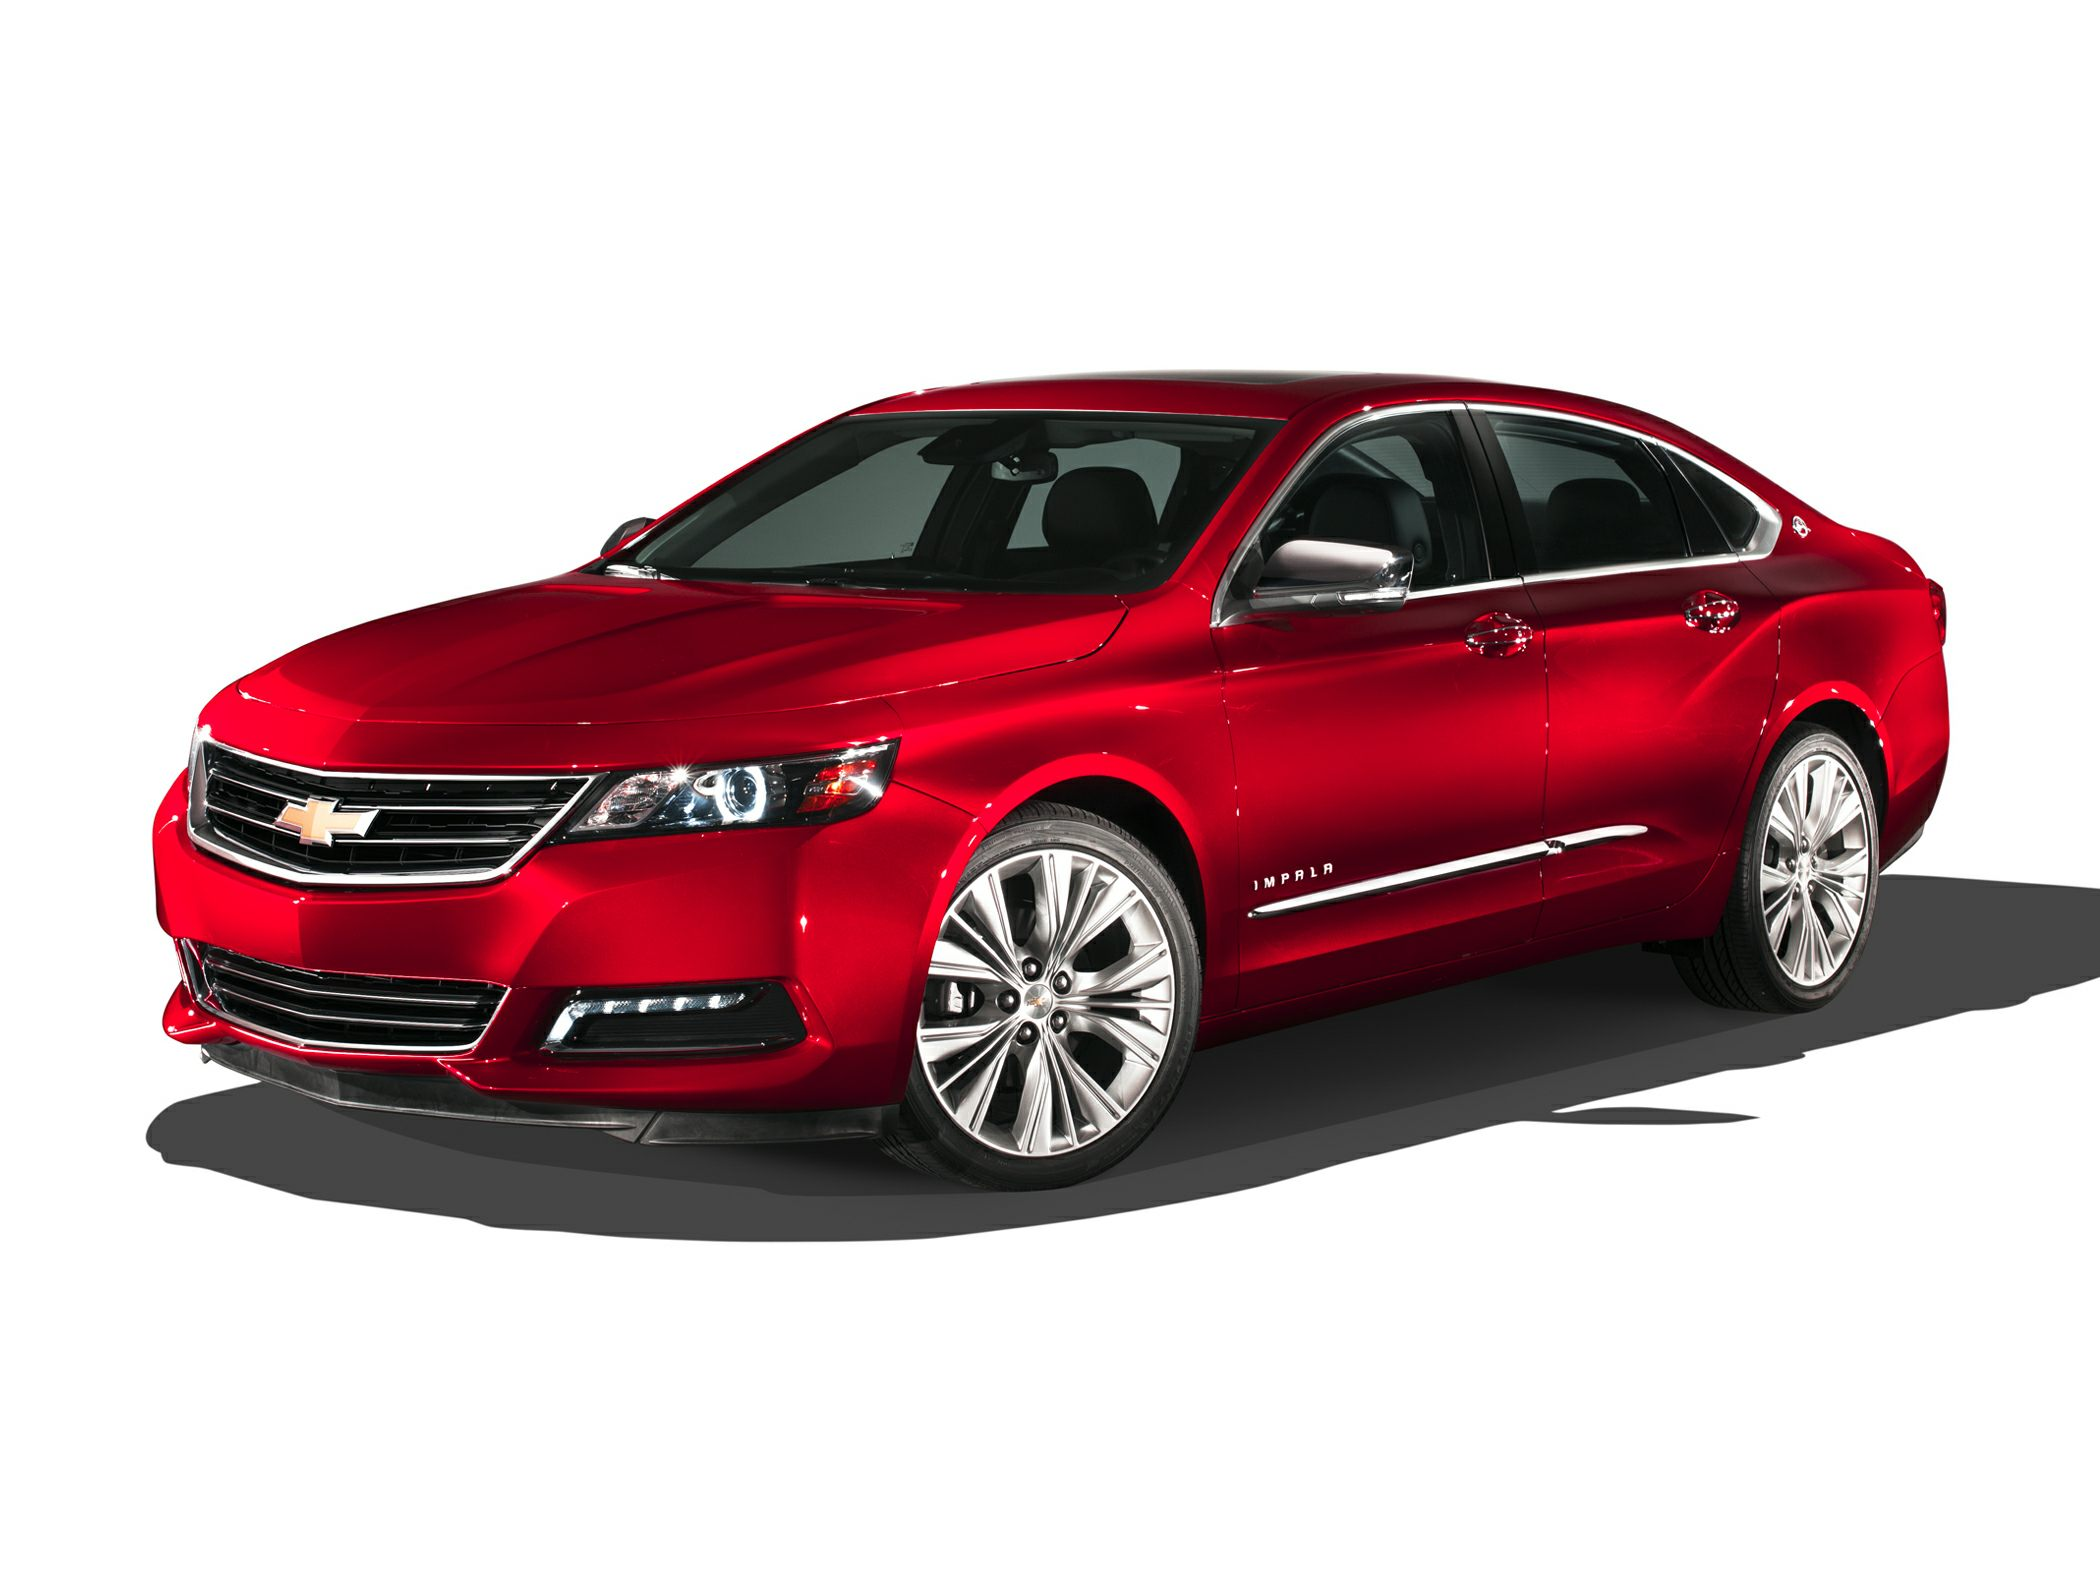 2017 Chevrolet Impala Specs Safety Rating & MPG CarsDirect